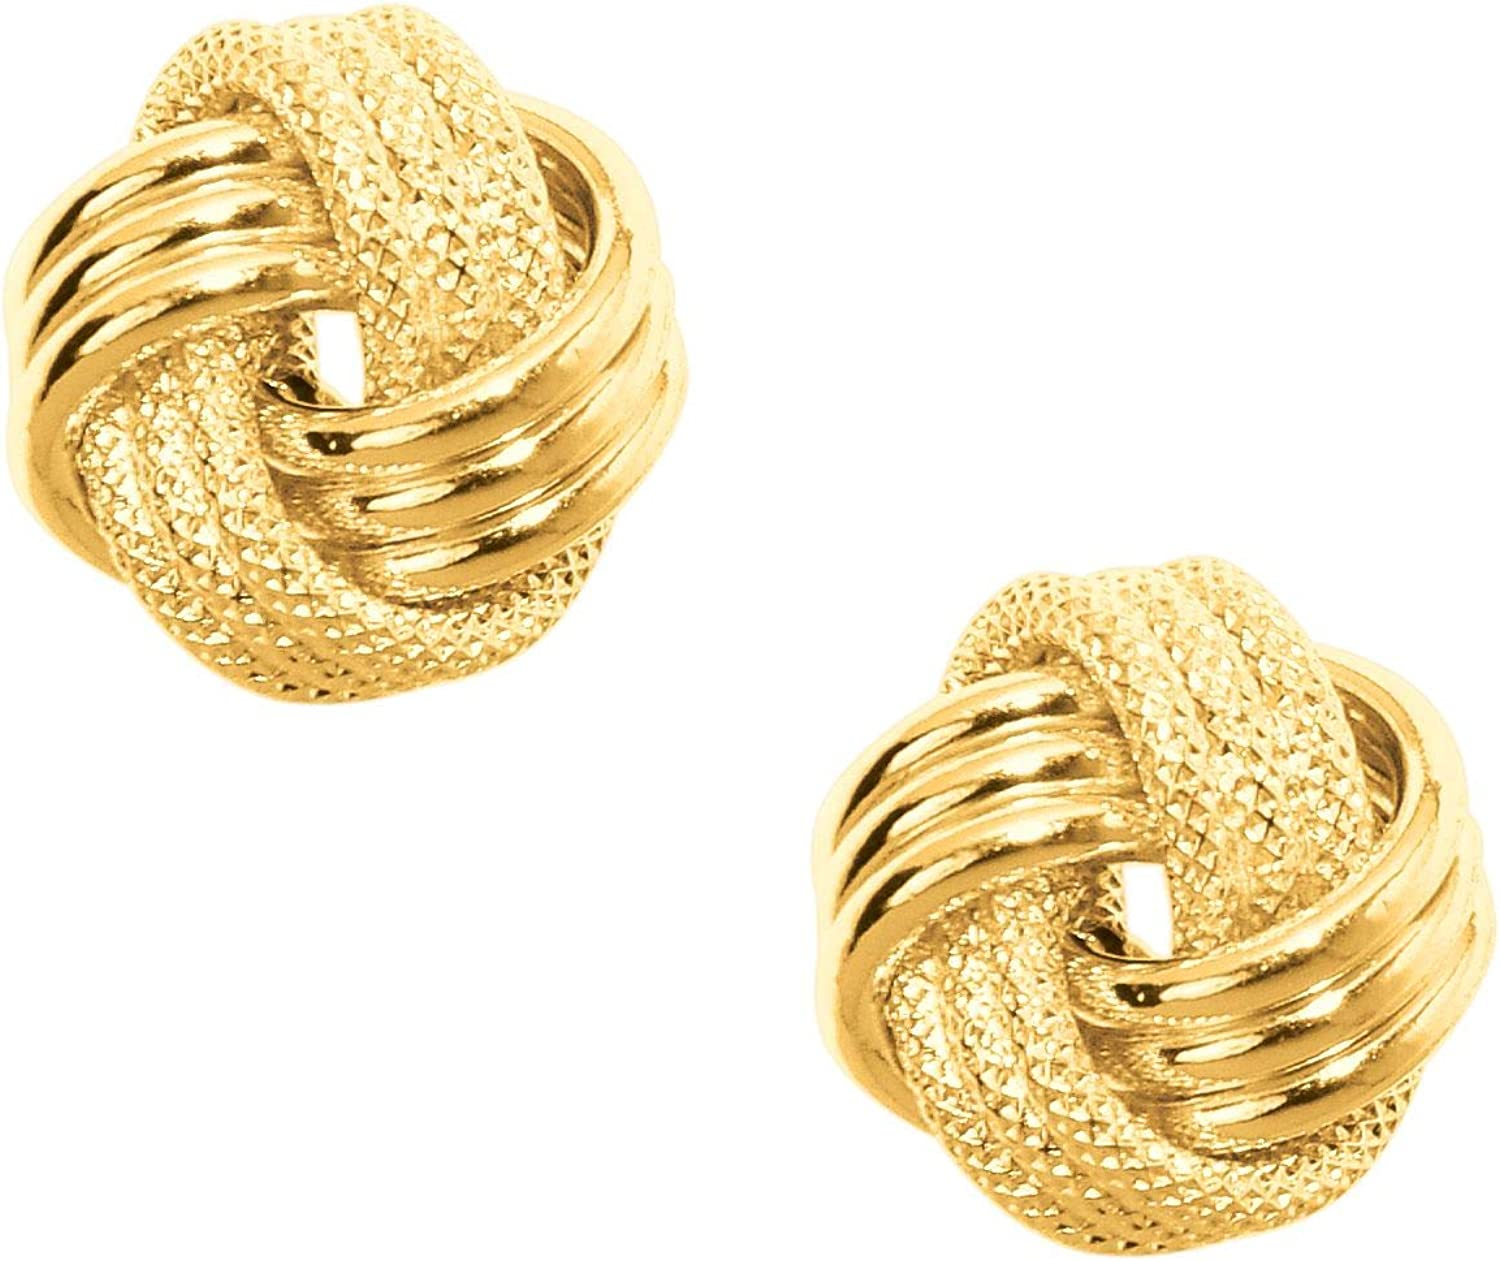 10K Yellow Gold Shiny Textured 3 Row Small Love Knot Earrings by IcedTime